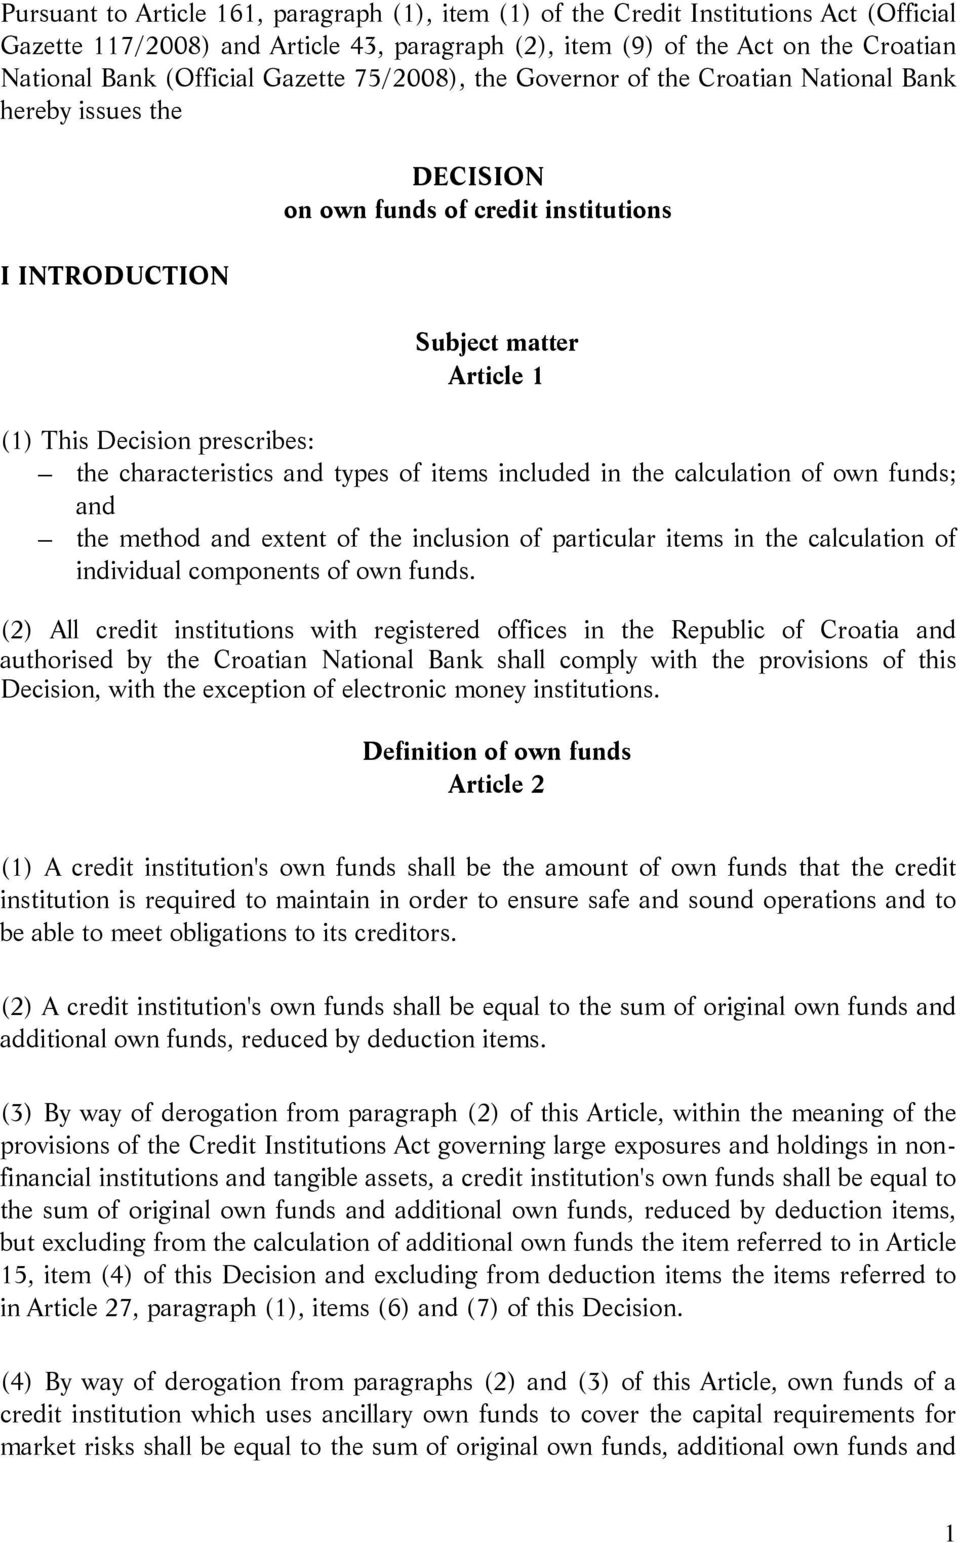 characteristics and types of items included in the calculation of own funds; and the method and extent of the inclusion of particular items in the calculation of individual components of own funds.